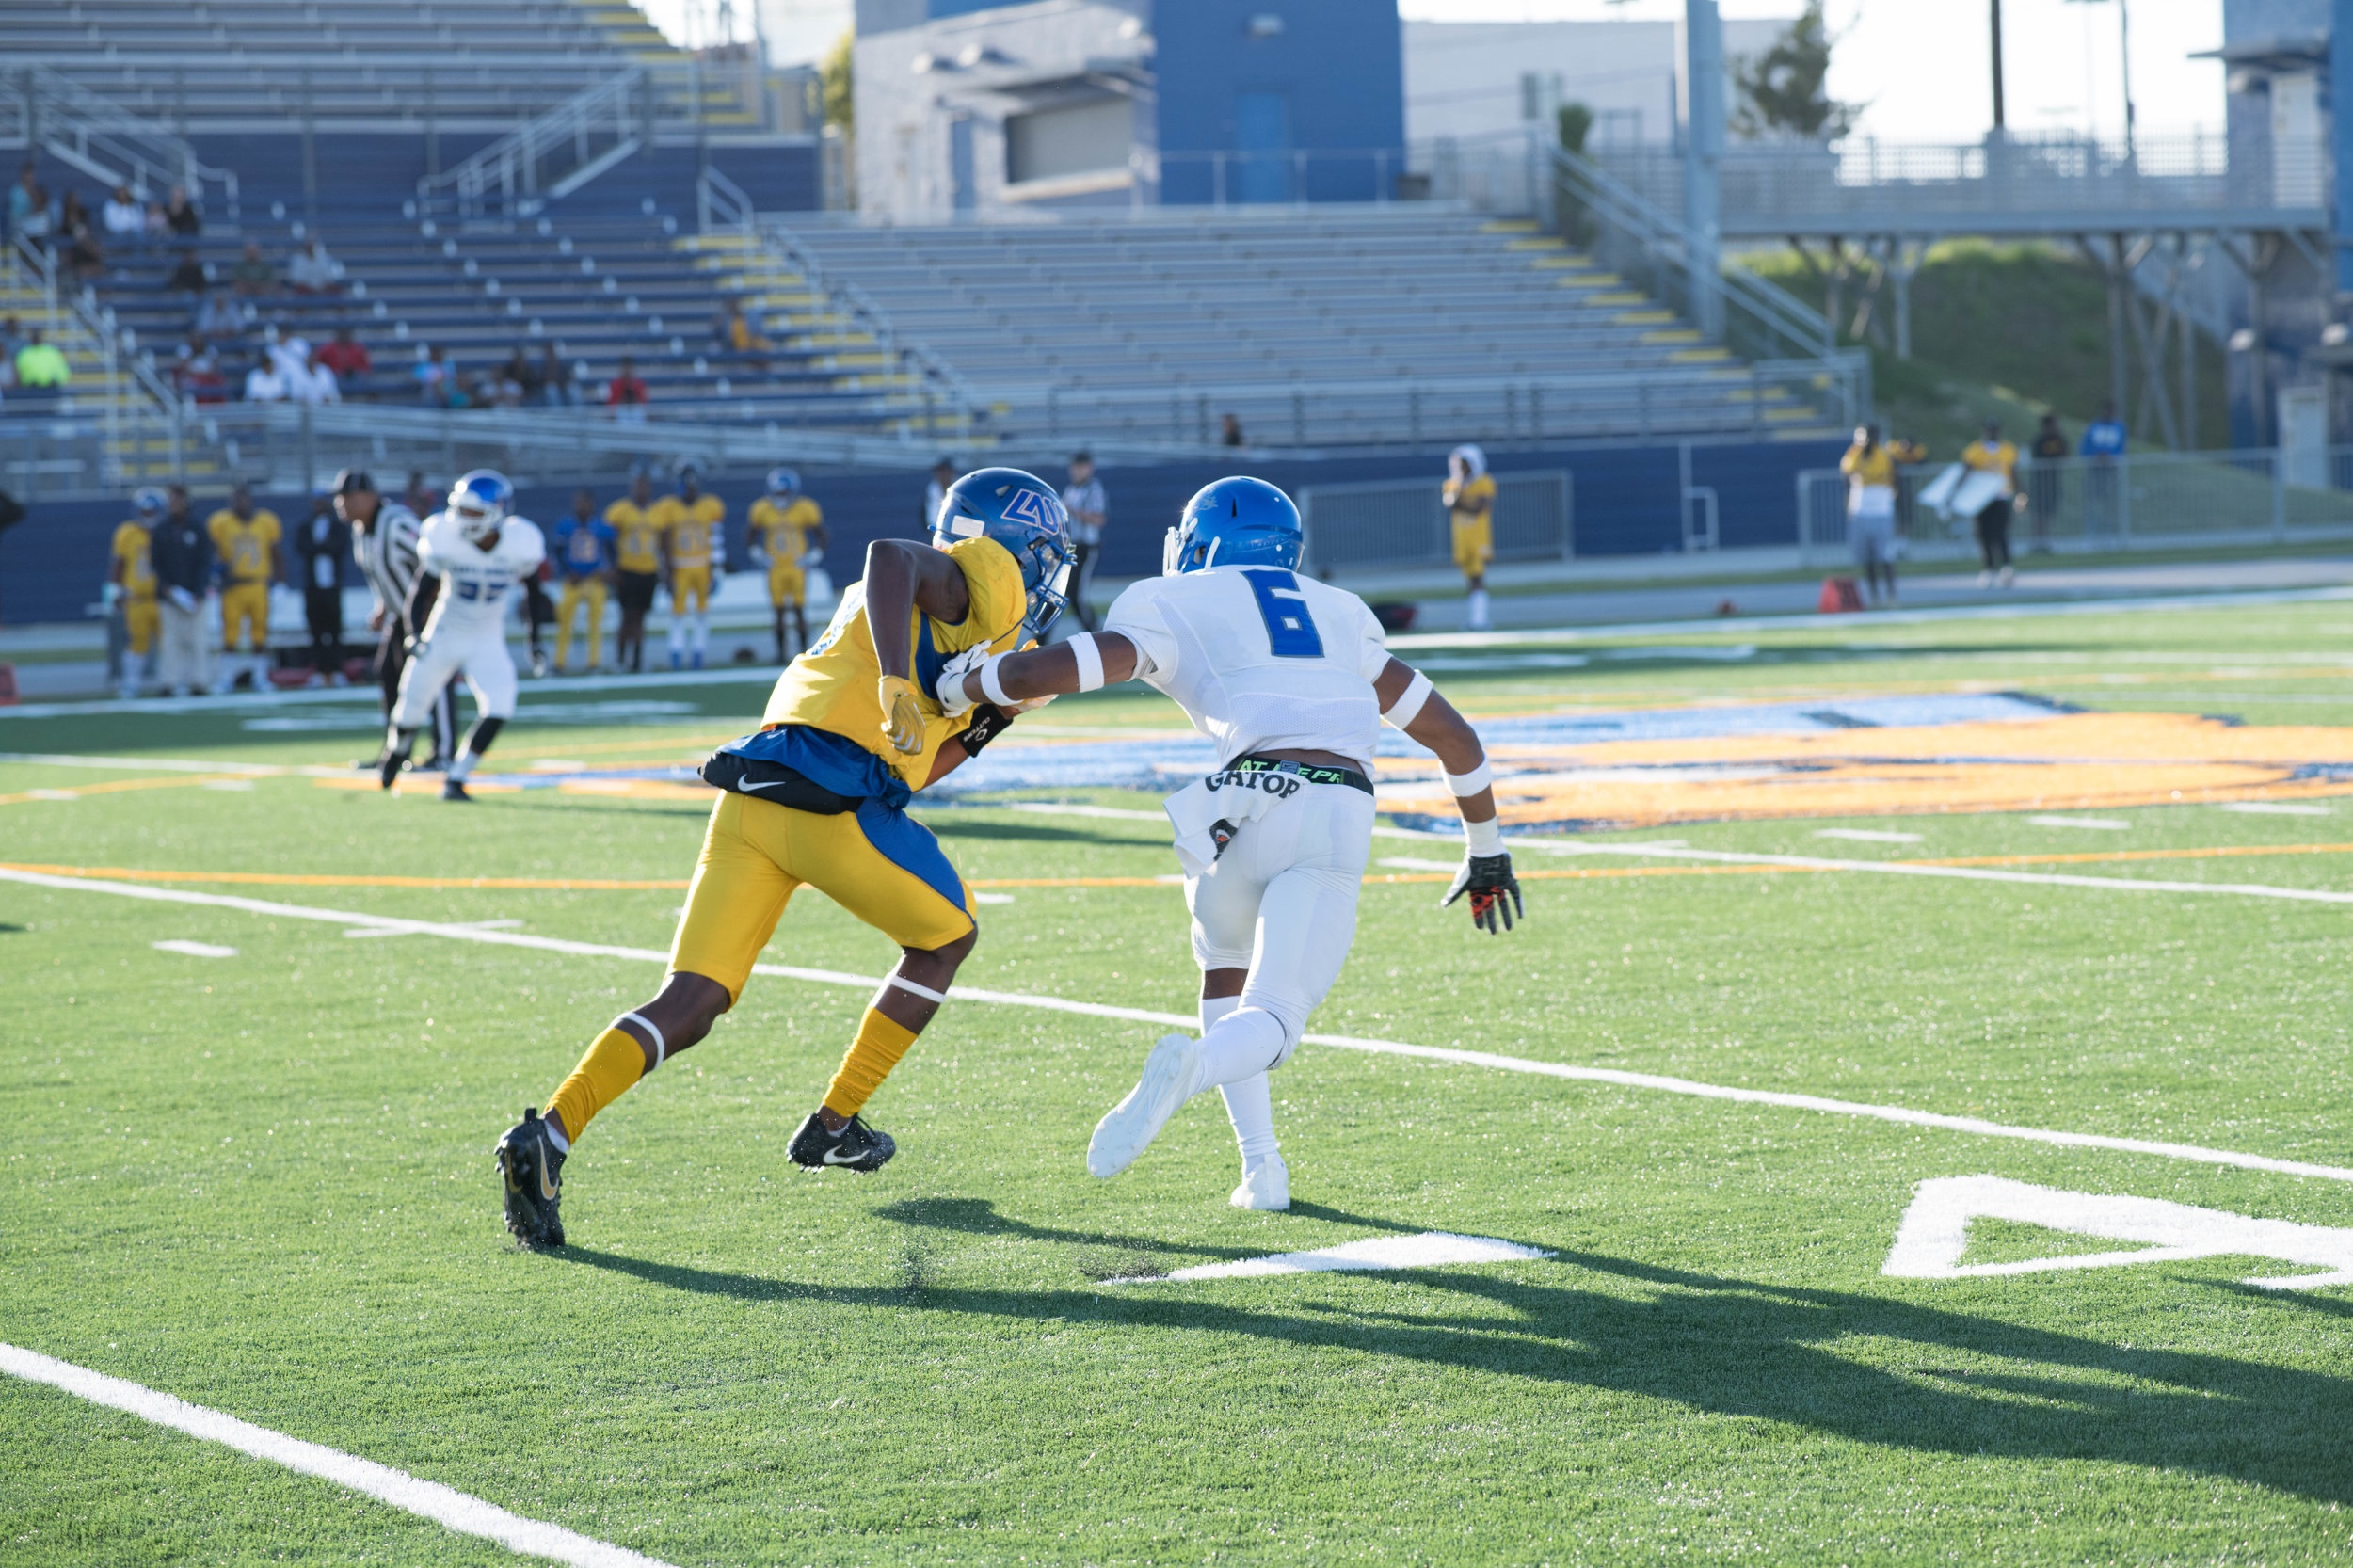 #6 Juston David defending against one of Southwest receivers.(Photo by Kevin Tidmore/The Corsair)